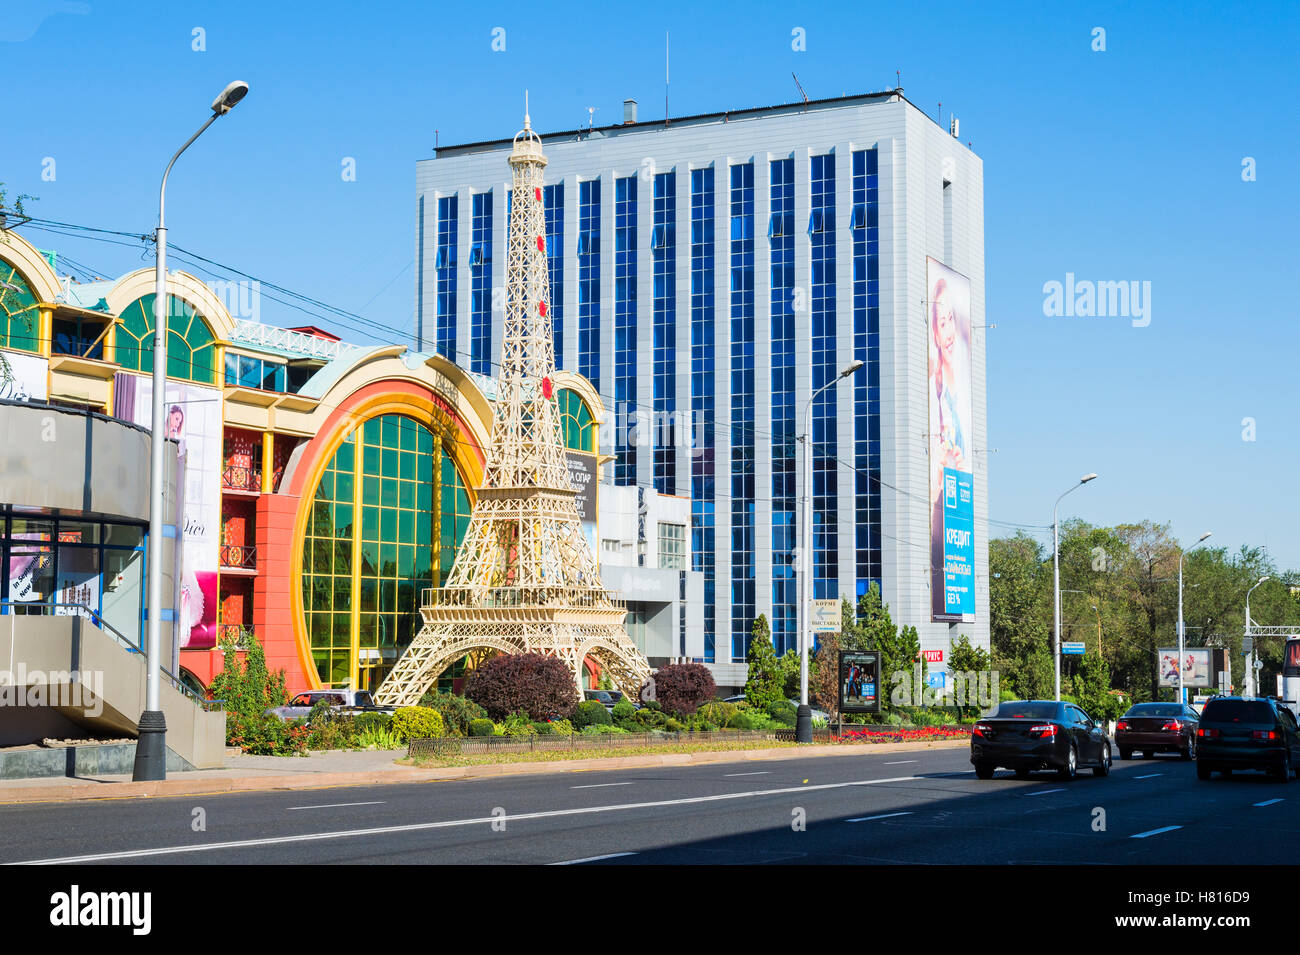 Shopping mall in Almaty city center, Kazakhstan, Central Asia - Stock Image